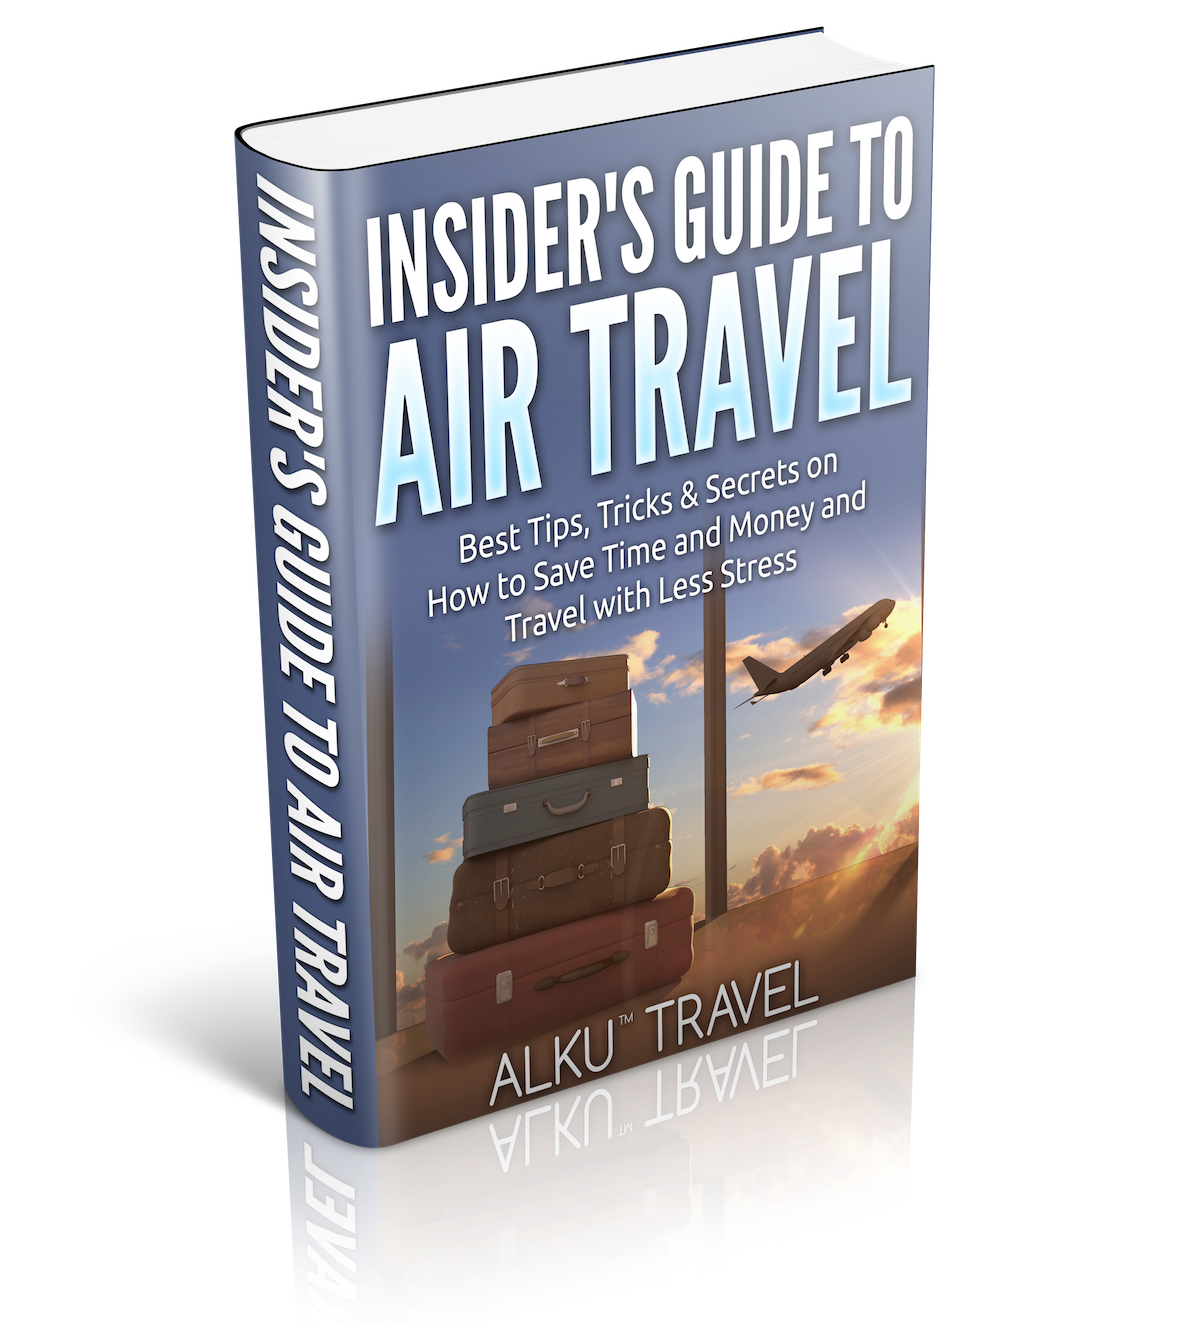 Insider's Guide to Air Travel